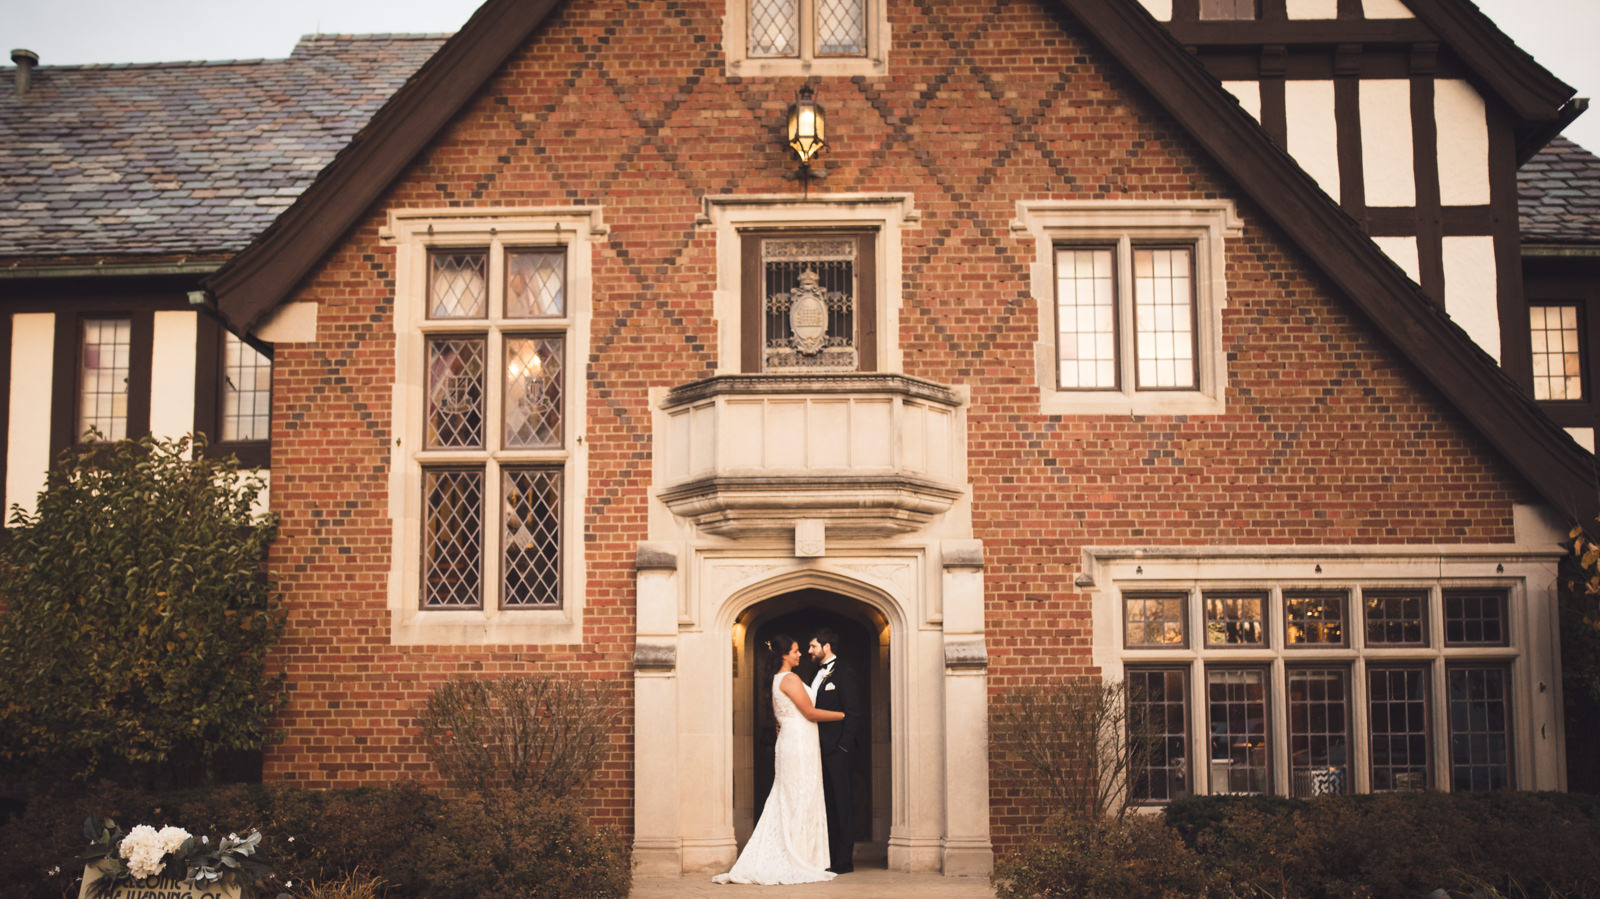 rollins-mansion-3239-wedding-photographer-des-moines-iowa-m-c.jpg